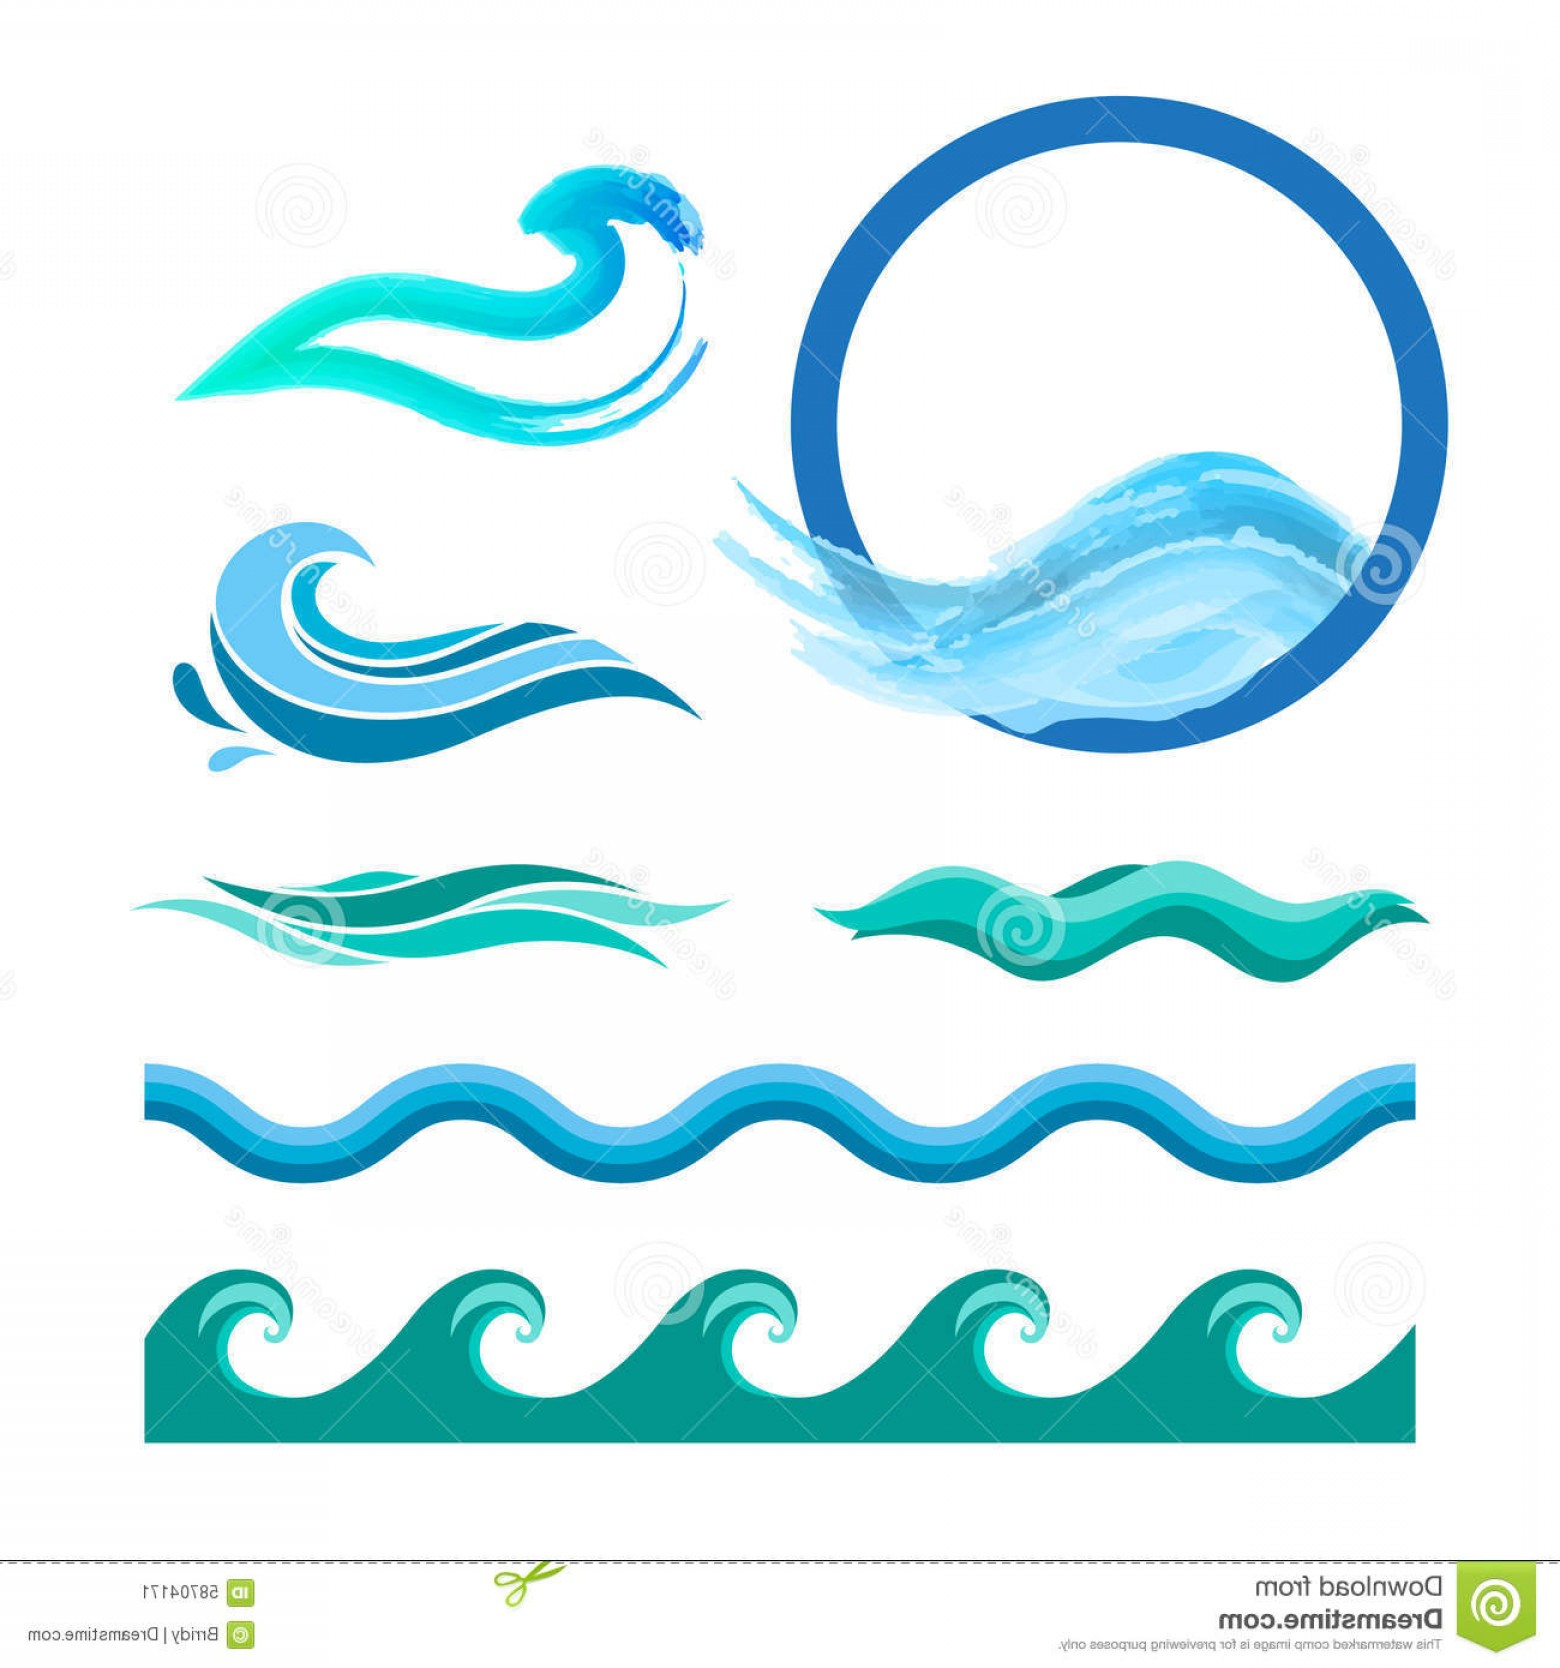 Ocean Wave Vector Illustration: Stock Illustration Set Blue Ocean Waves Vector Logo Elements Sea Water Icons Image